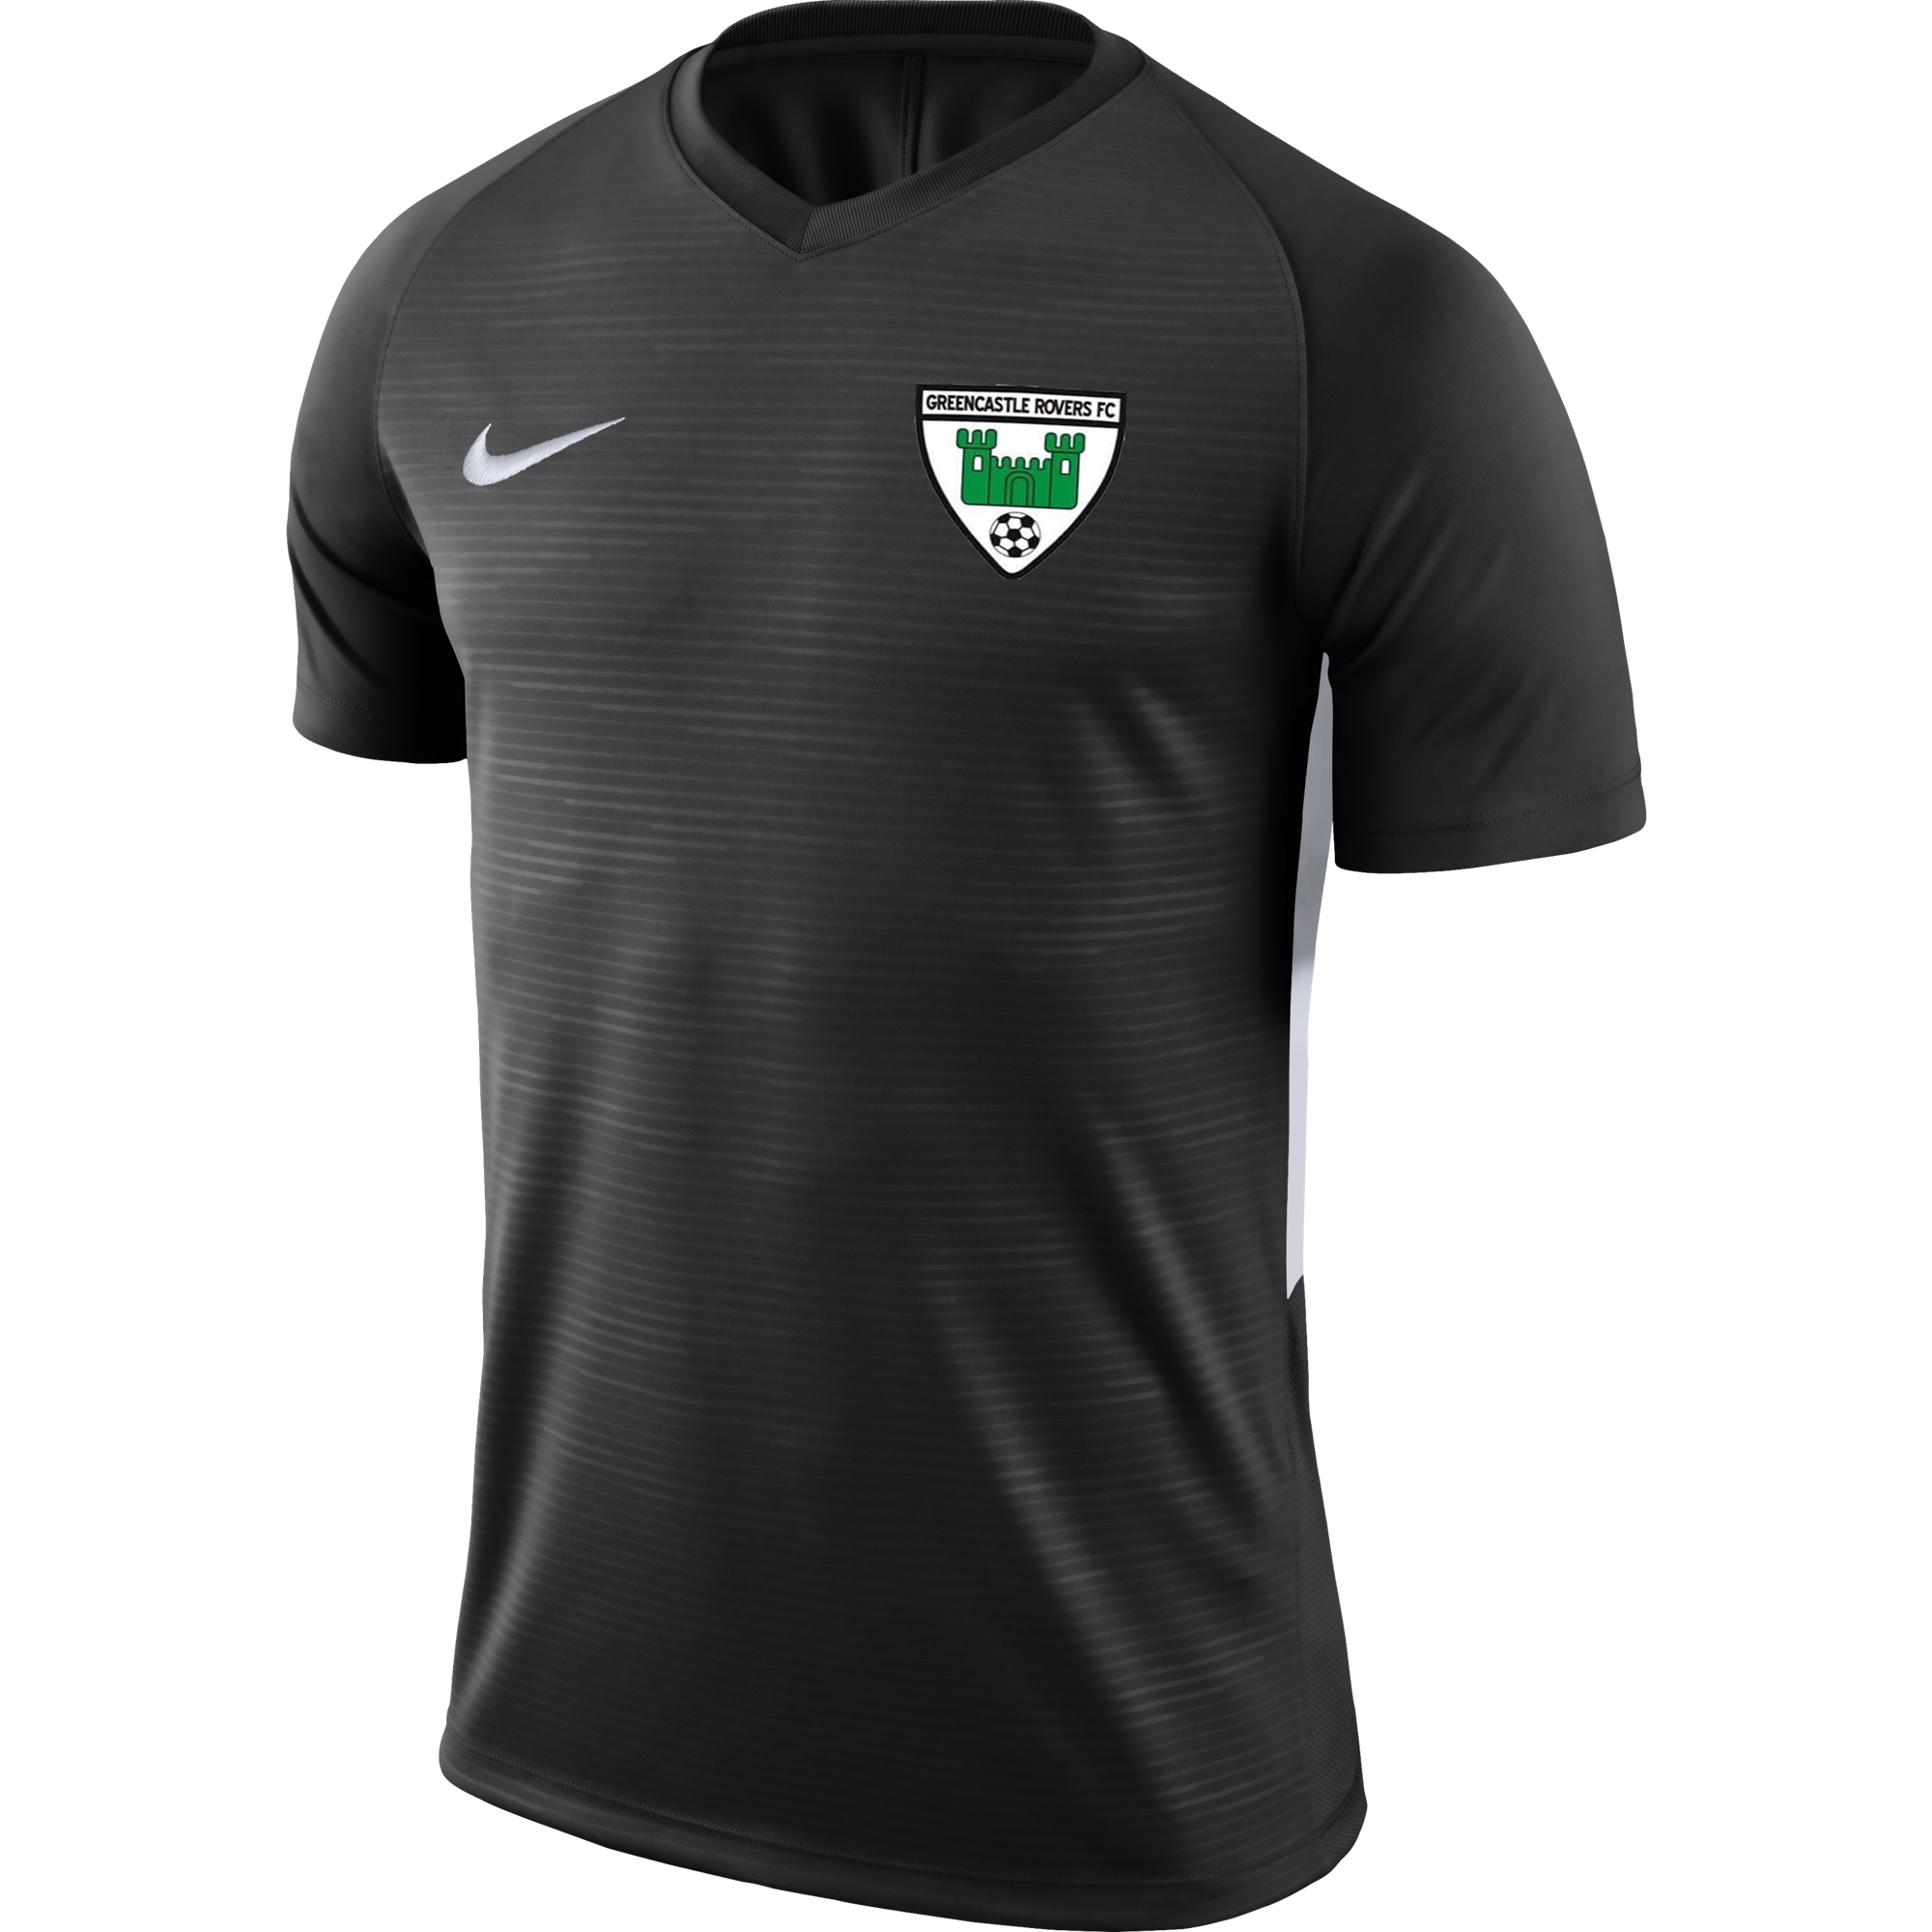 greencastle rovers black tiempo jersey size xxl mens 38799 p